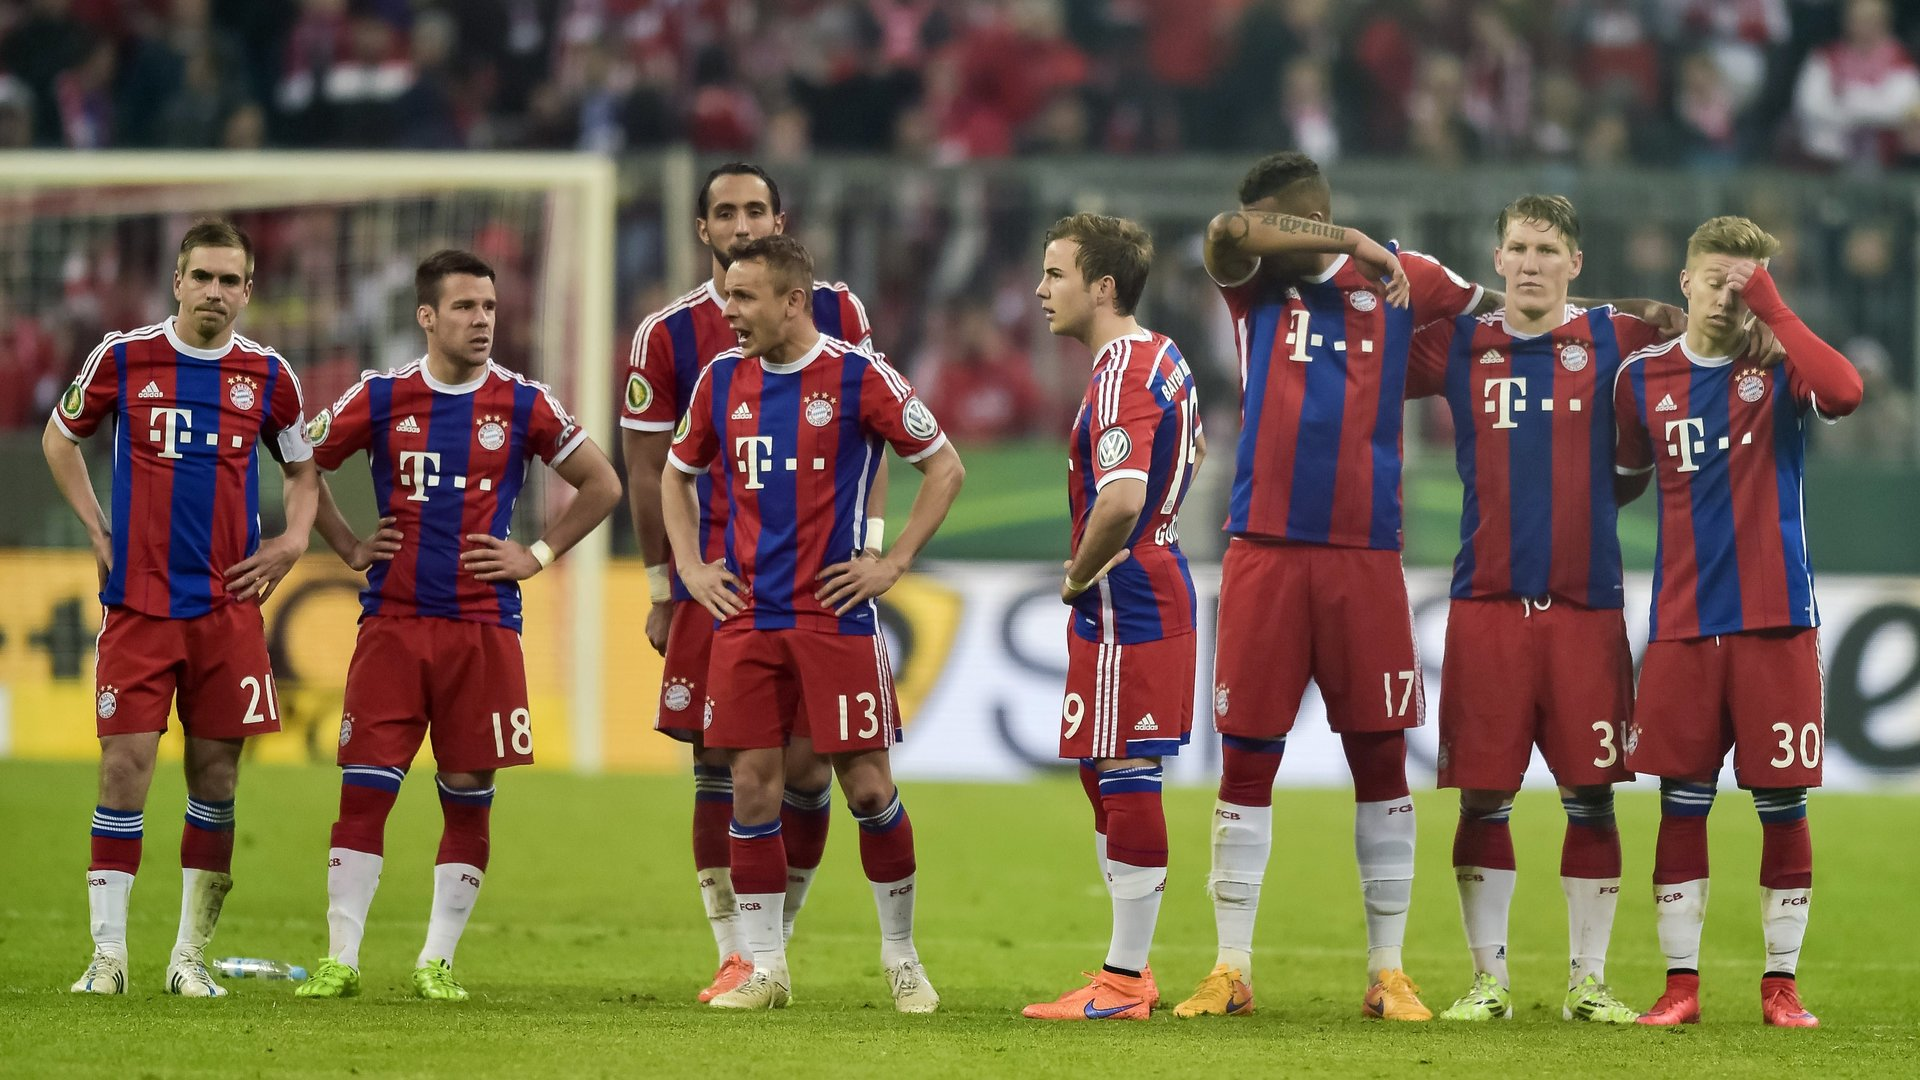 Bayern Munich's players react during the penalty shoot-out of the German Cup DFB Pokal semi-final football match FC Bayern Munich v Borussia Dortmund in Munich, southern Germany, on April 28, 2015. Dortmund won the match 1-3 after penalties. AFP PHOTO / GUENTER SCHIFFMANN +++ RESTRICTIONS / EMBARGO ACCORDING TO DFB RULES IMAGE SEQUENCES TO SIMULATE VIDEO IS NOT ALLOWED DURING MATCH TIME. MOBILE (MMS) USE IS NOT ALLOWED DURING AND FOR FURTHER TWO HOURS AFTER THE MATCH. FOR MORE INFORMATION CONTACT DFB DIRECTLY AT +49 69 67880 (Photo credit should read GUENTER SCHIFFMANN/AFP/Getty Images)